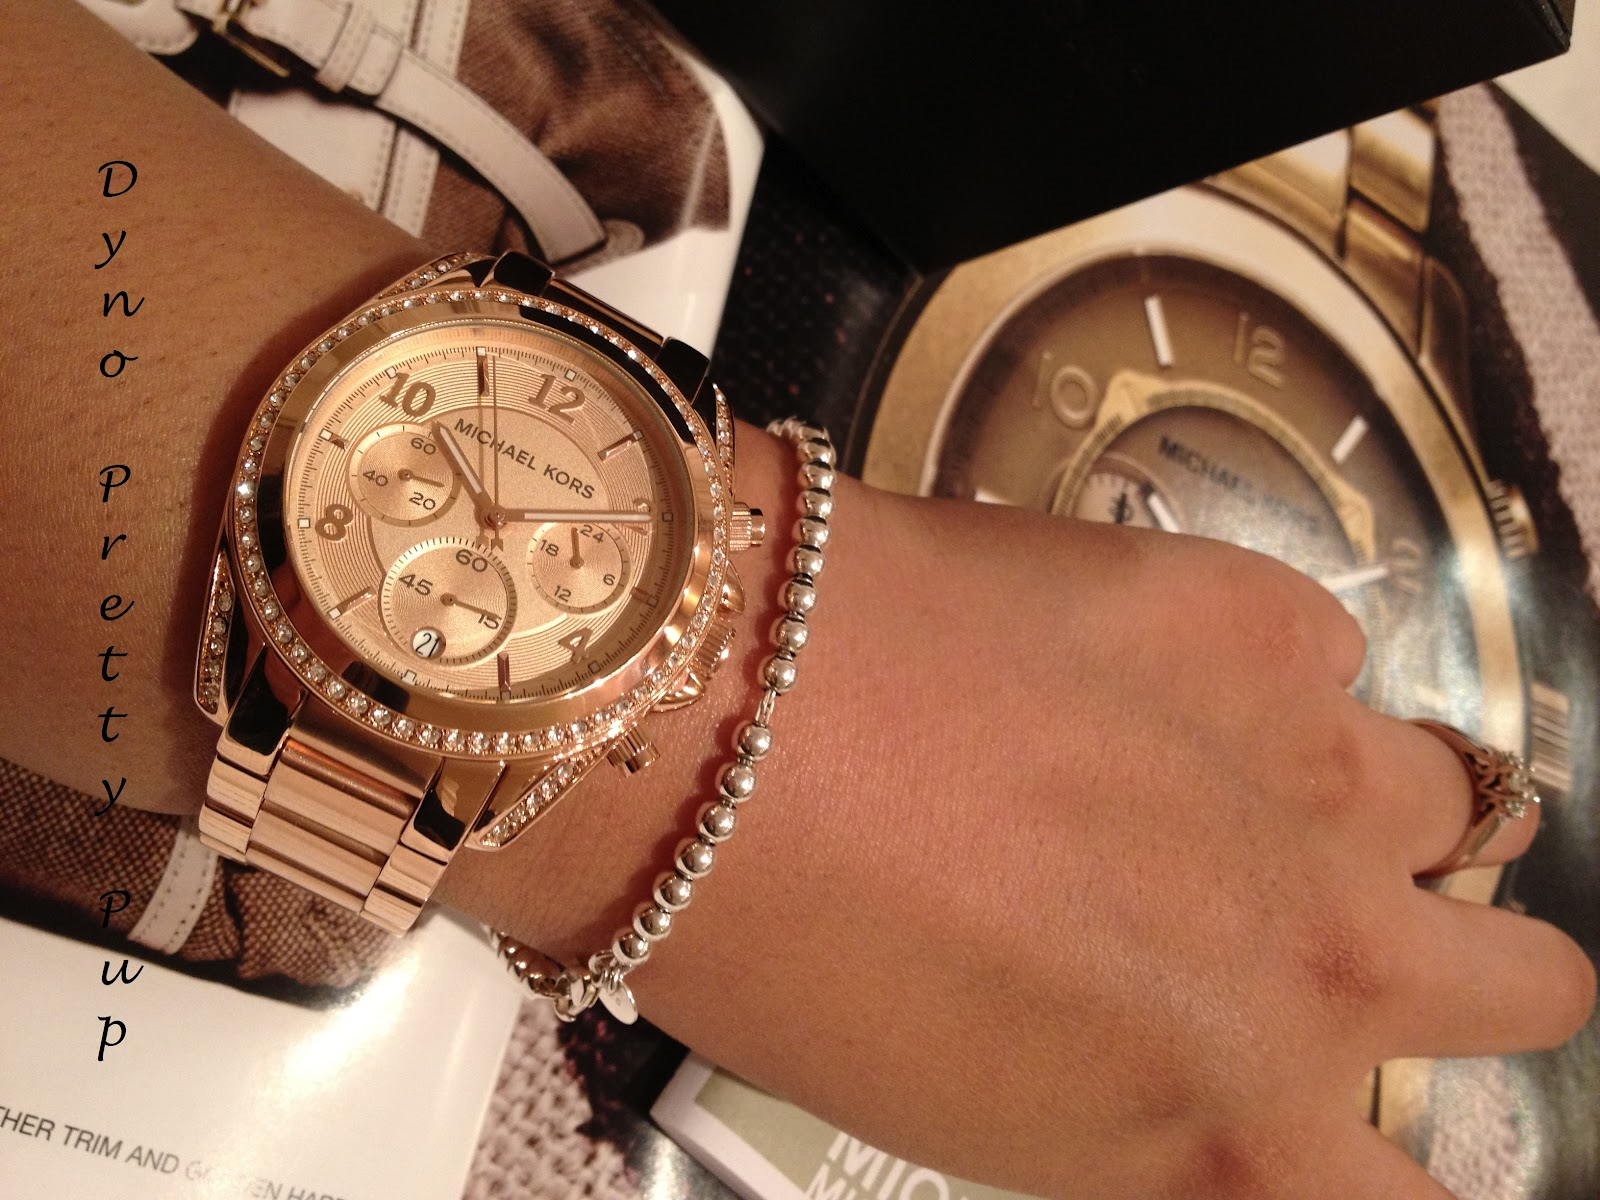 Michael Kors Watches For Women - Macy's